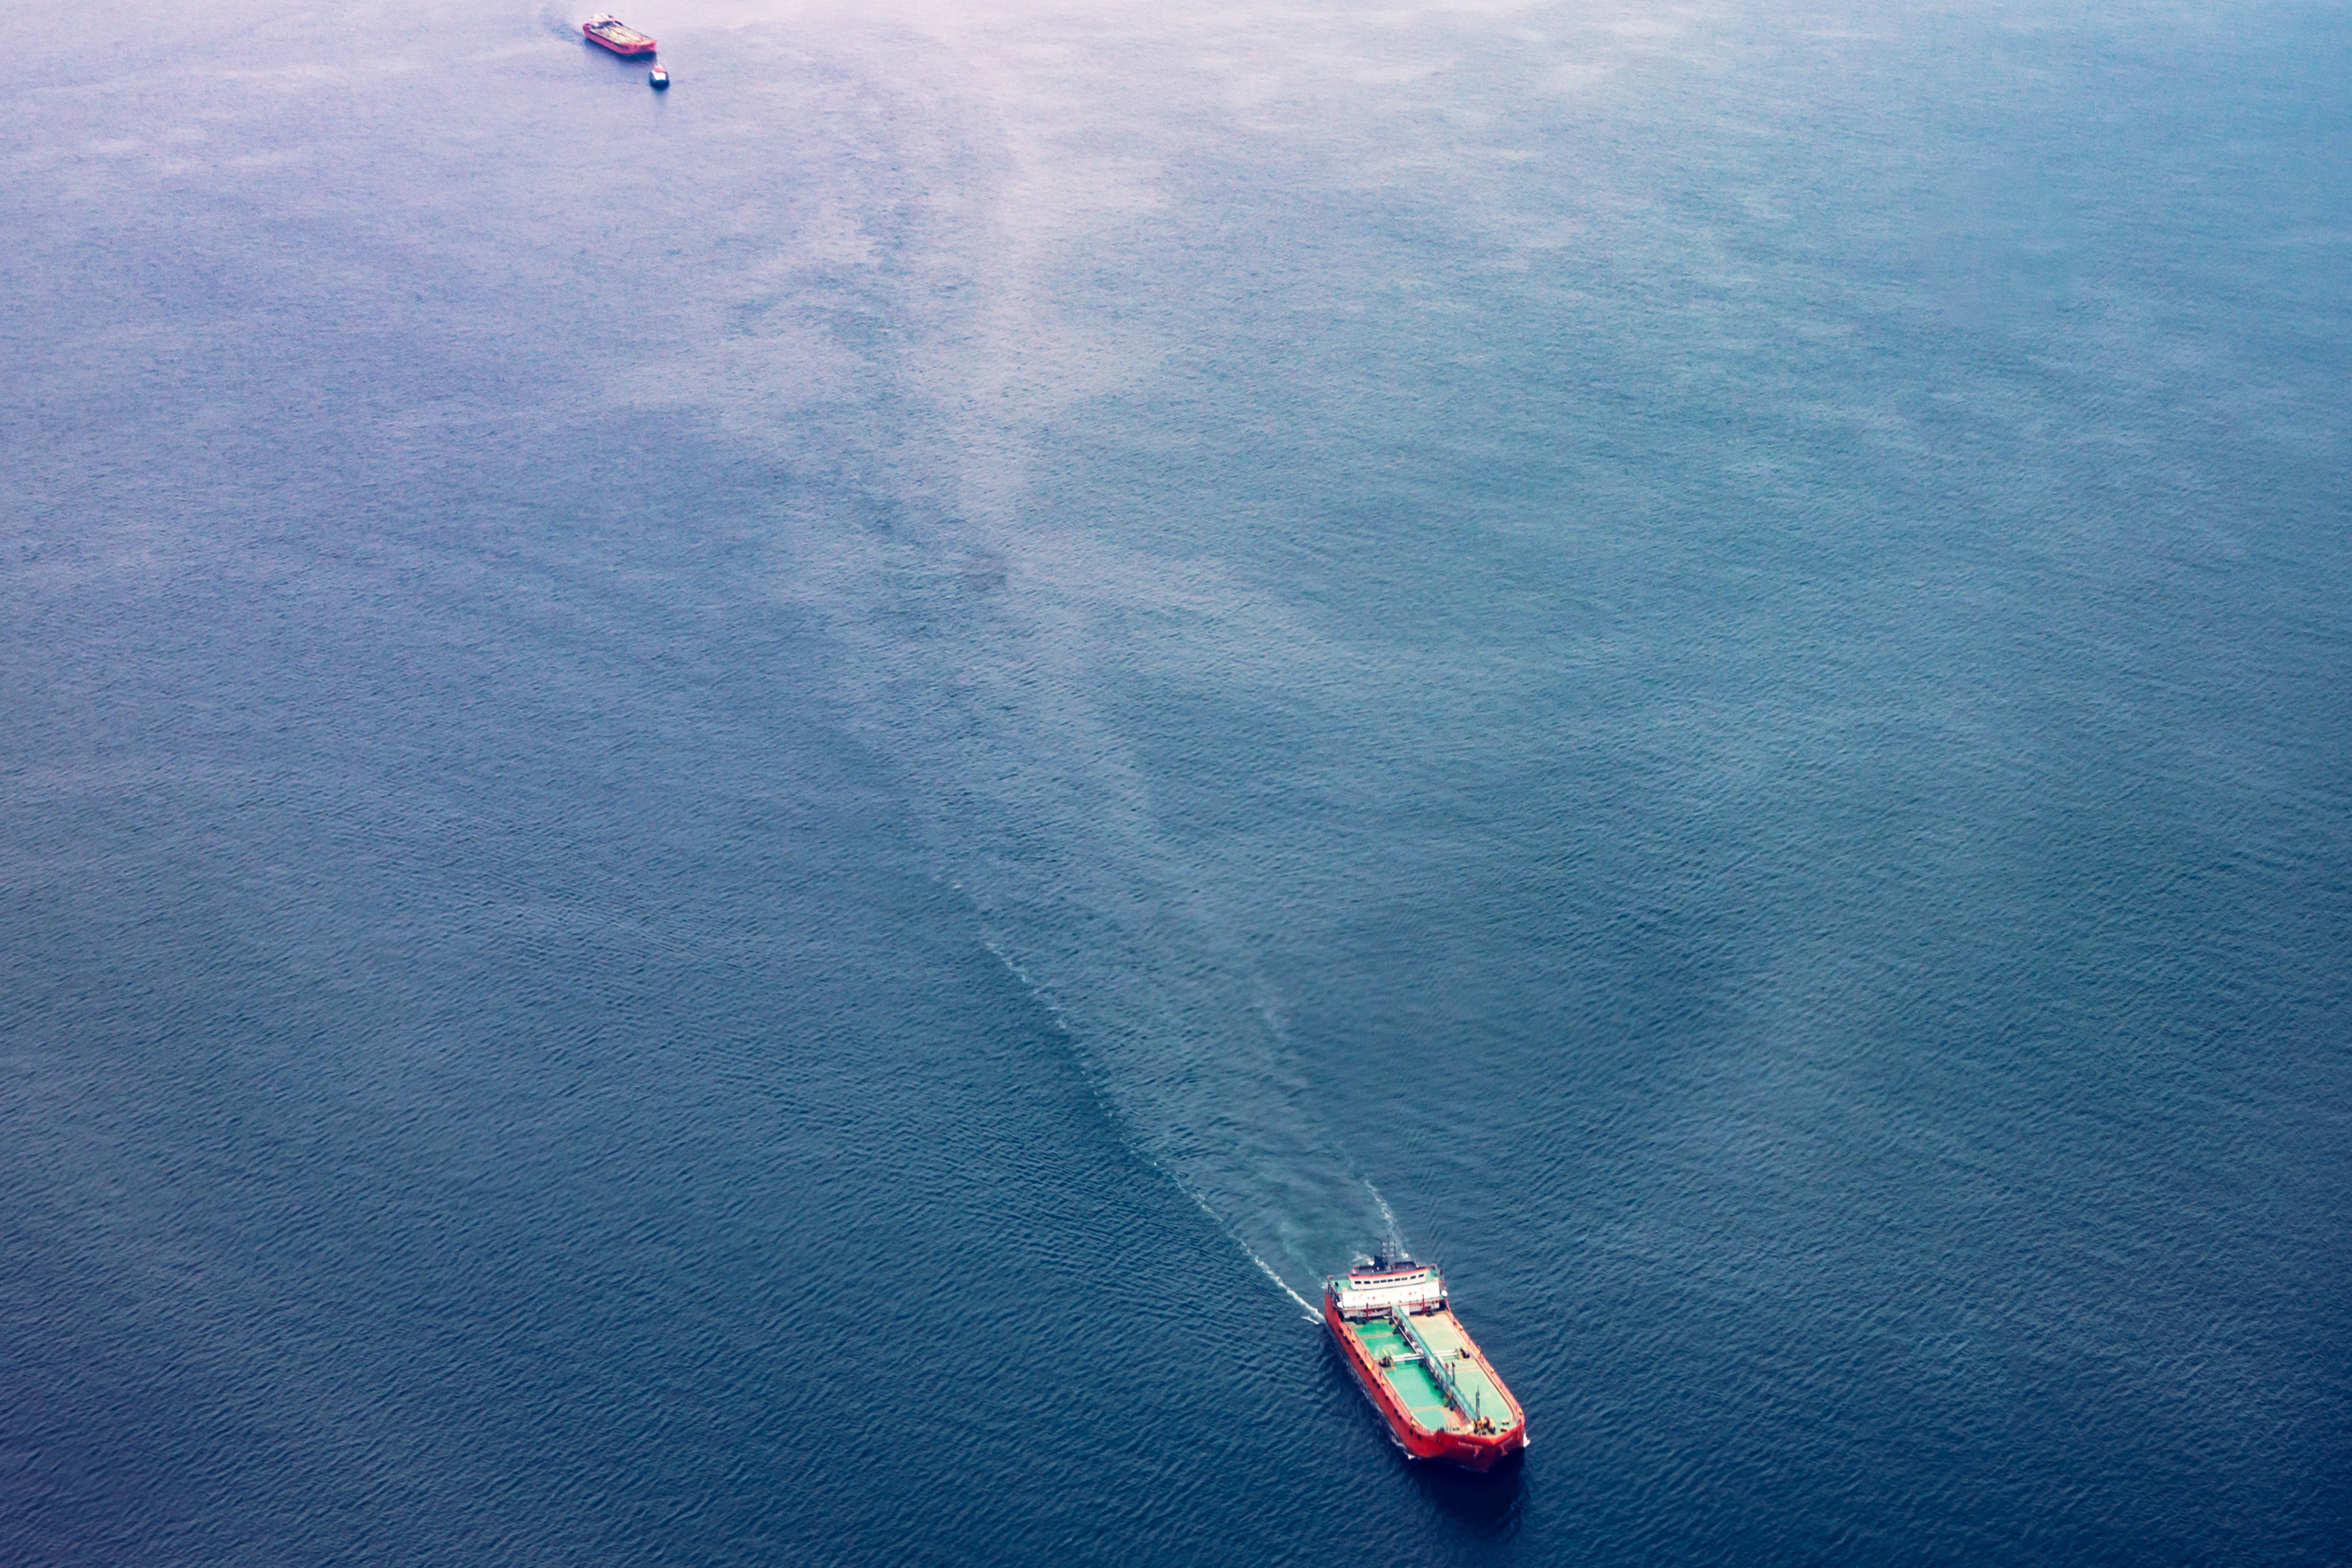 Red, White, and Teal Cargo Ship on Water